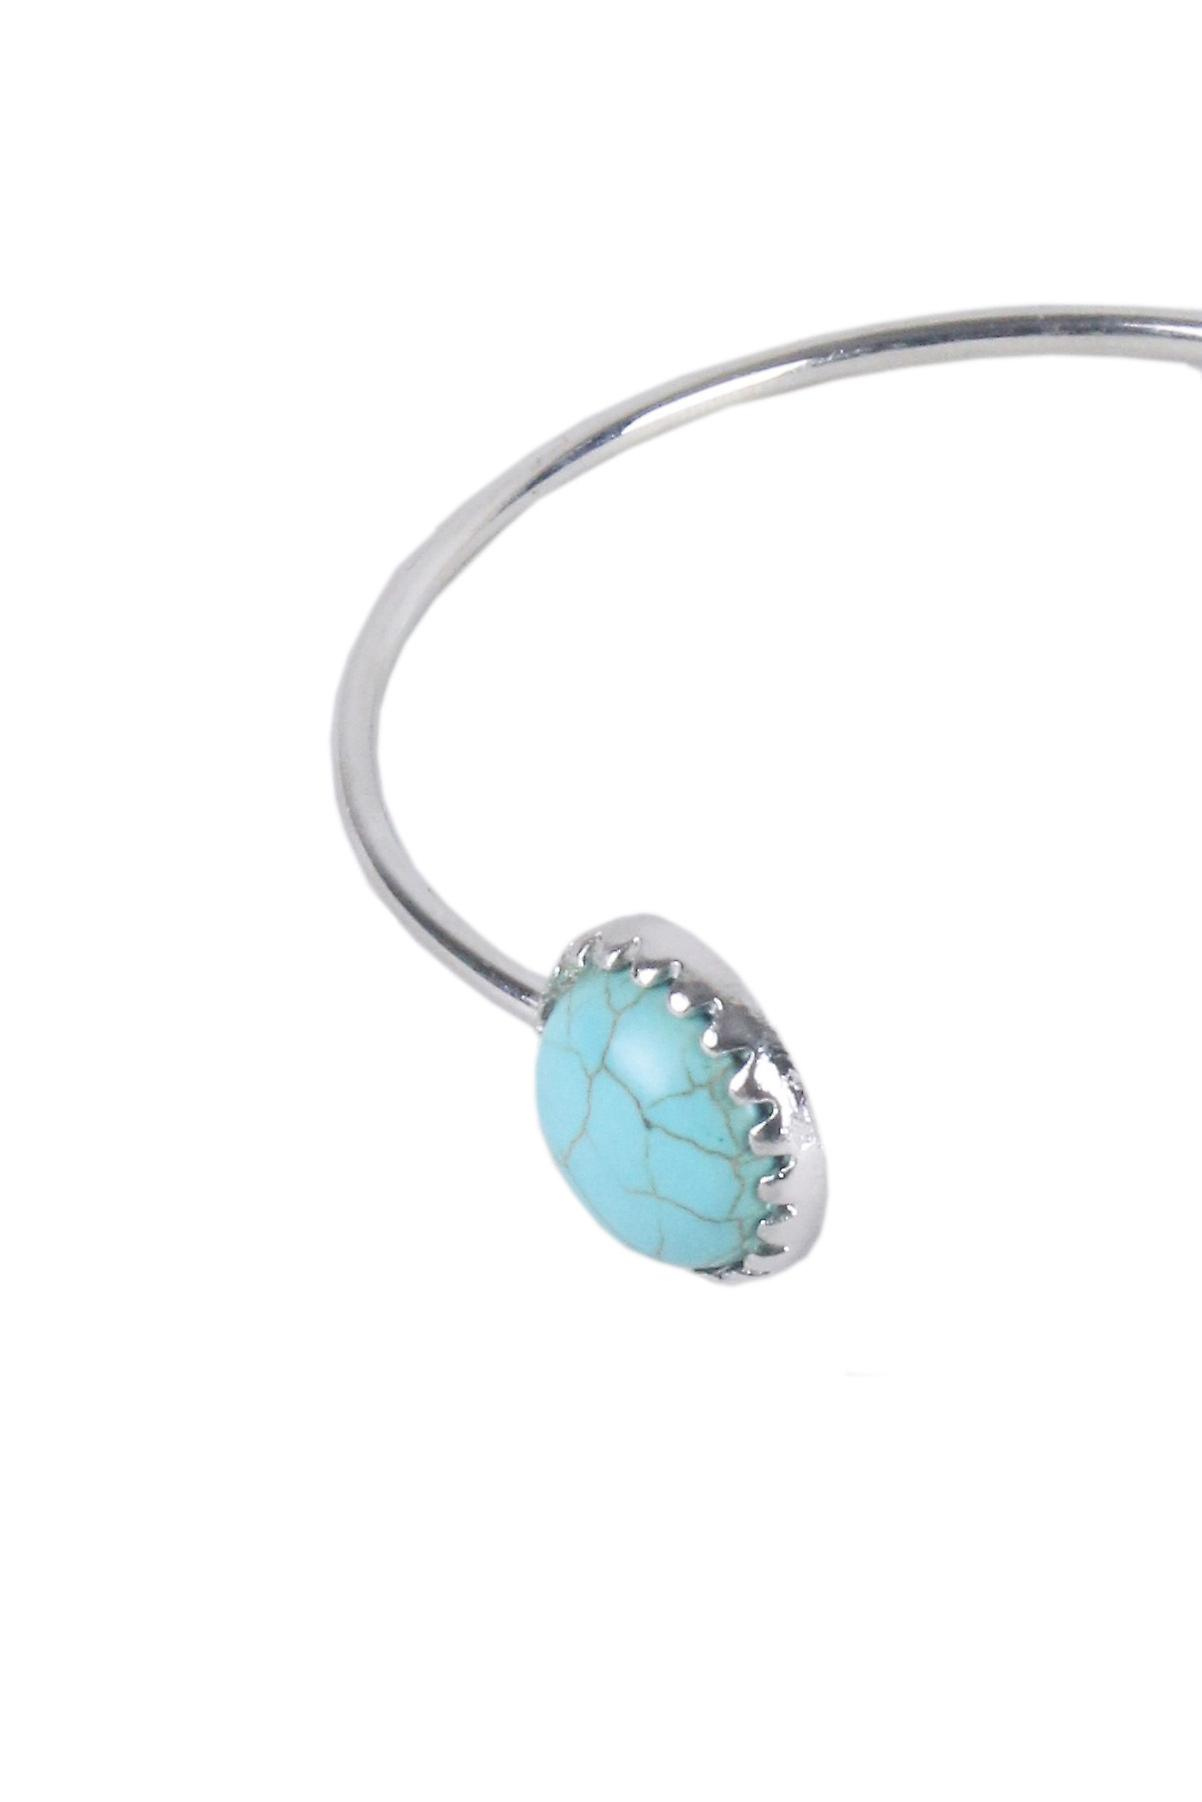 Lovemystyle Silver Bangle With Turquoise Stone And Moon Design